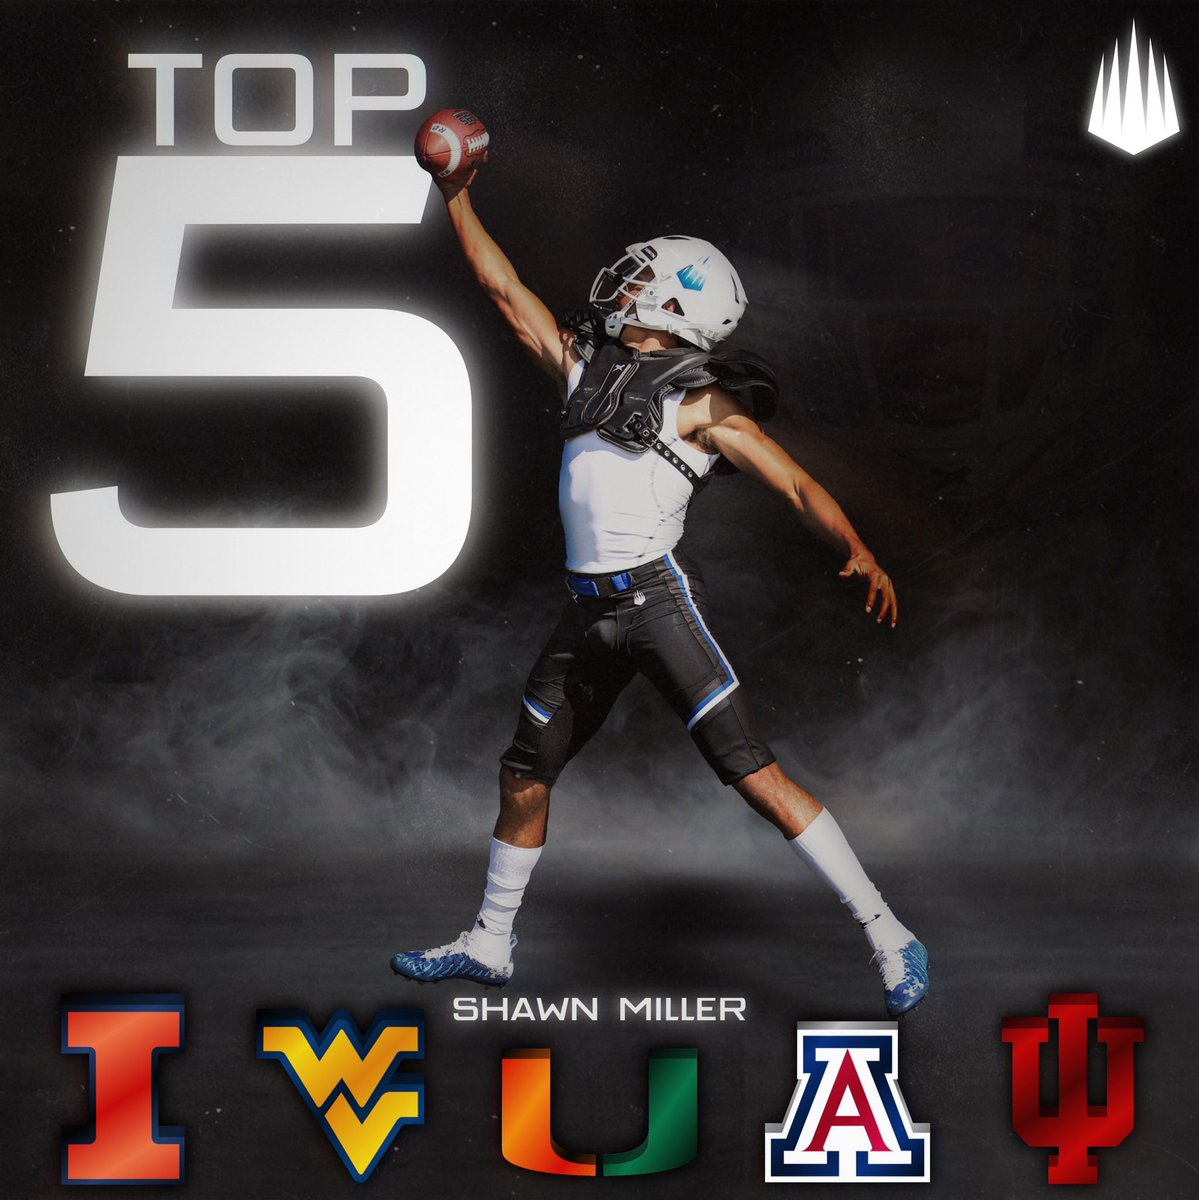 Replying to @ShawnMiller__: I want to thank all the schools that have shown interest. #top5